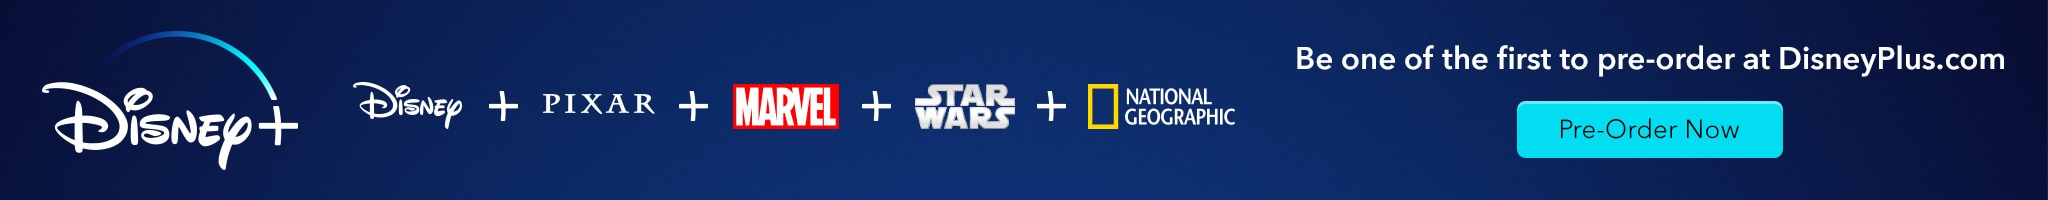 Disney+. Disney, Pixar, Marvel, Star Wars, and National Geographic. Be one of the first to pre-order at DisneyPlus.com. Pre-Order Now.